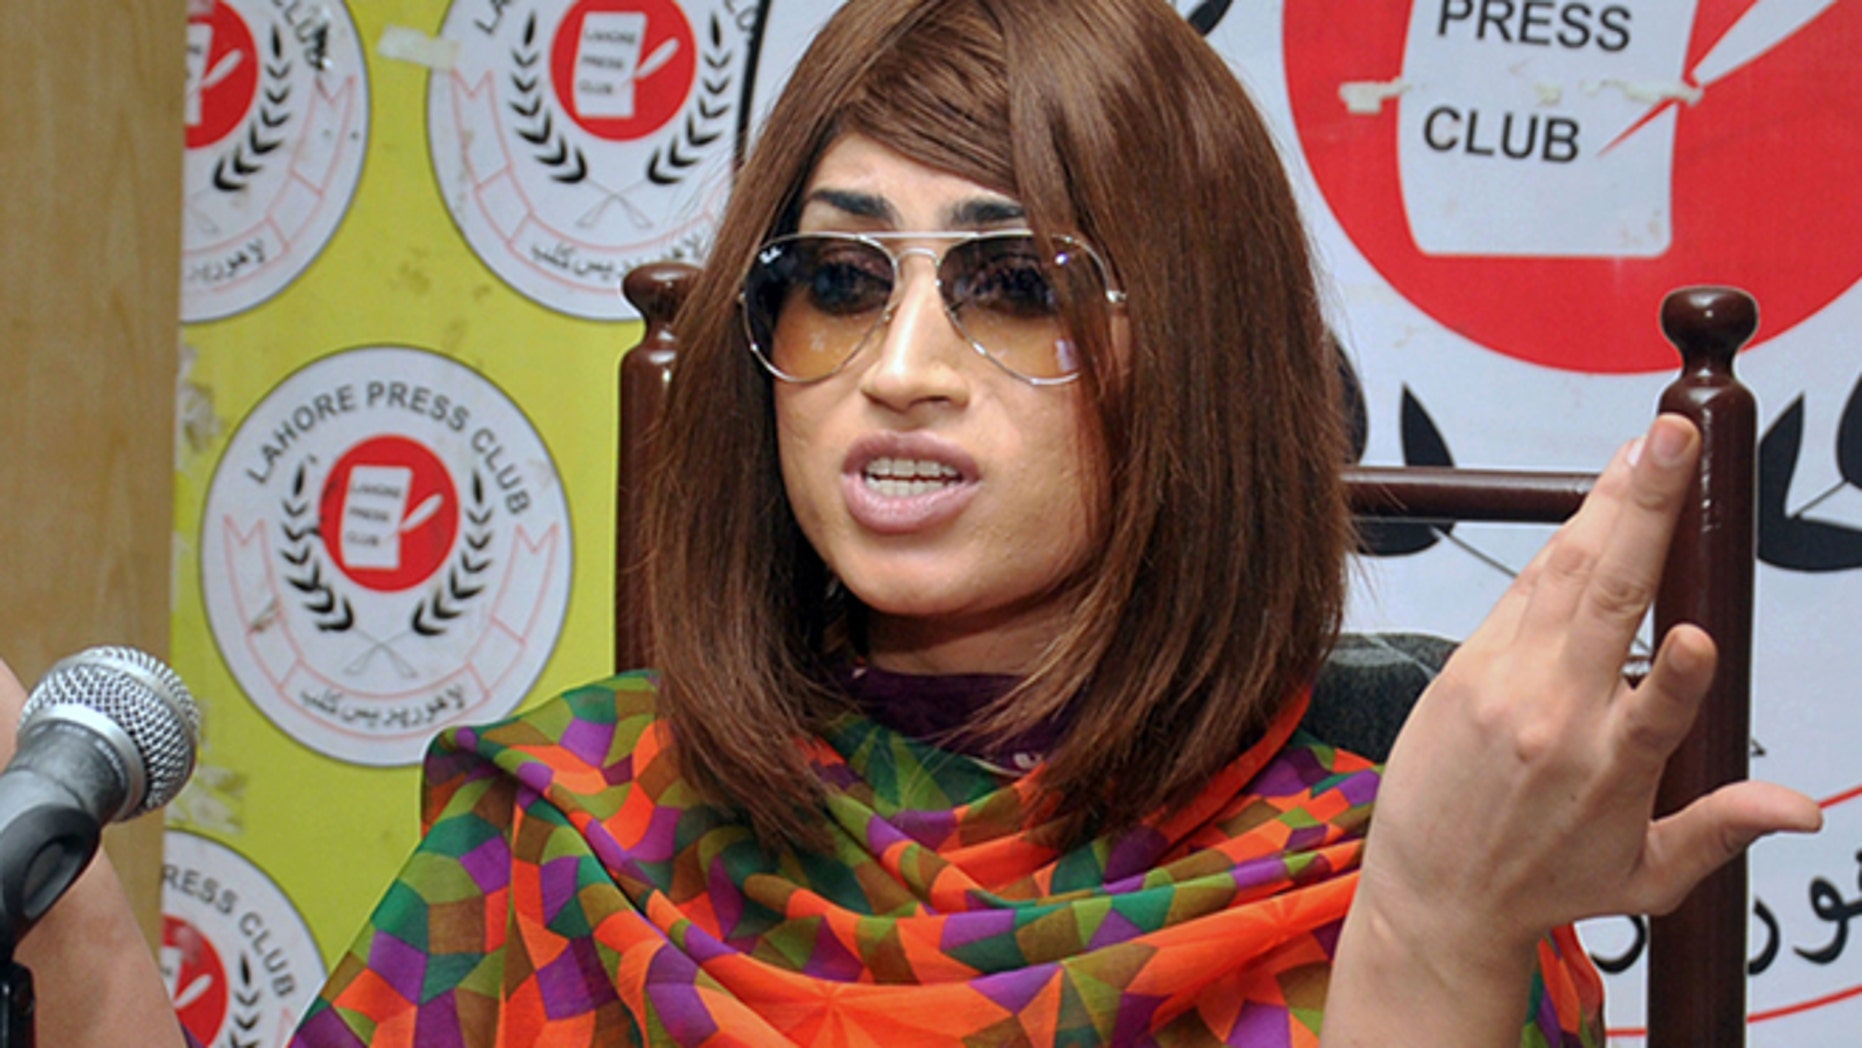 In this picture taken on June 28, 2016, Pakistani fashion model Qandeel Baloch speaks during a press conference in Lahore, Pakistan.